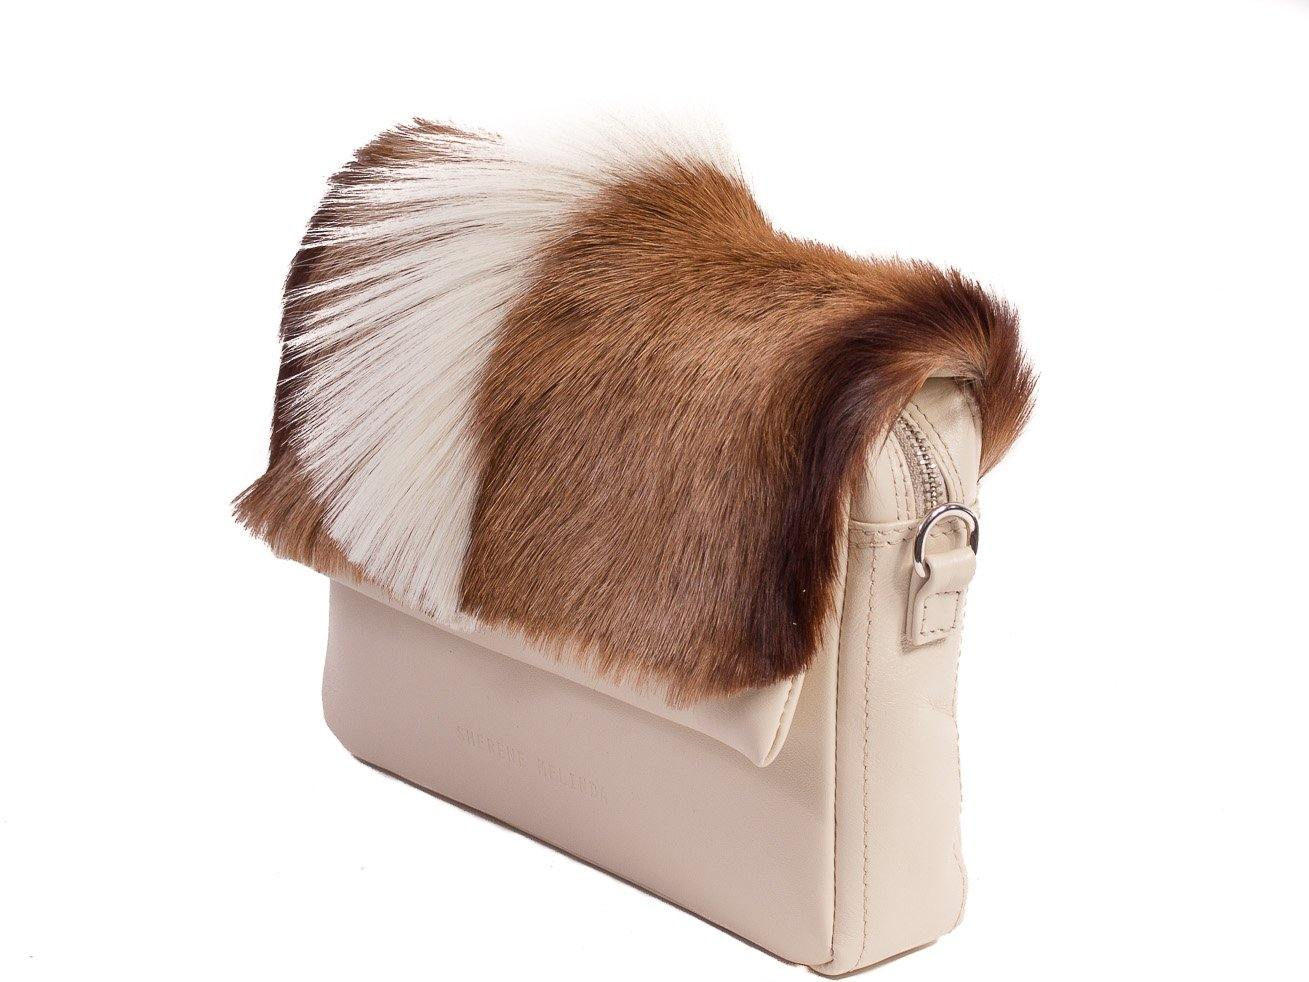 sherene melinda springbok hair-on-hide natural leather shoulder bag Fan  side angle d112db5d683ec